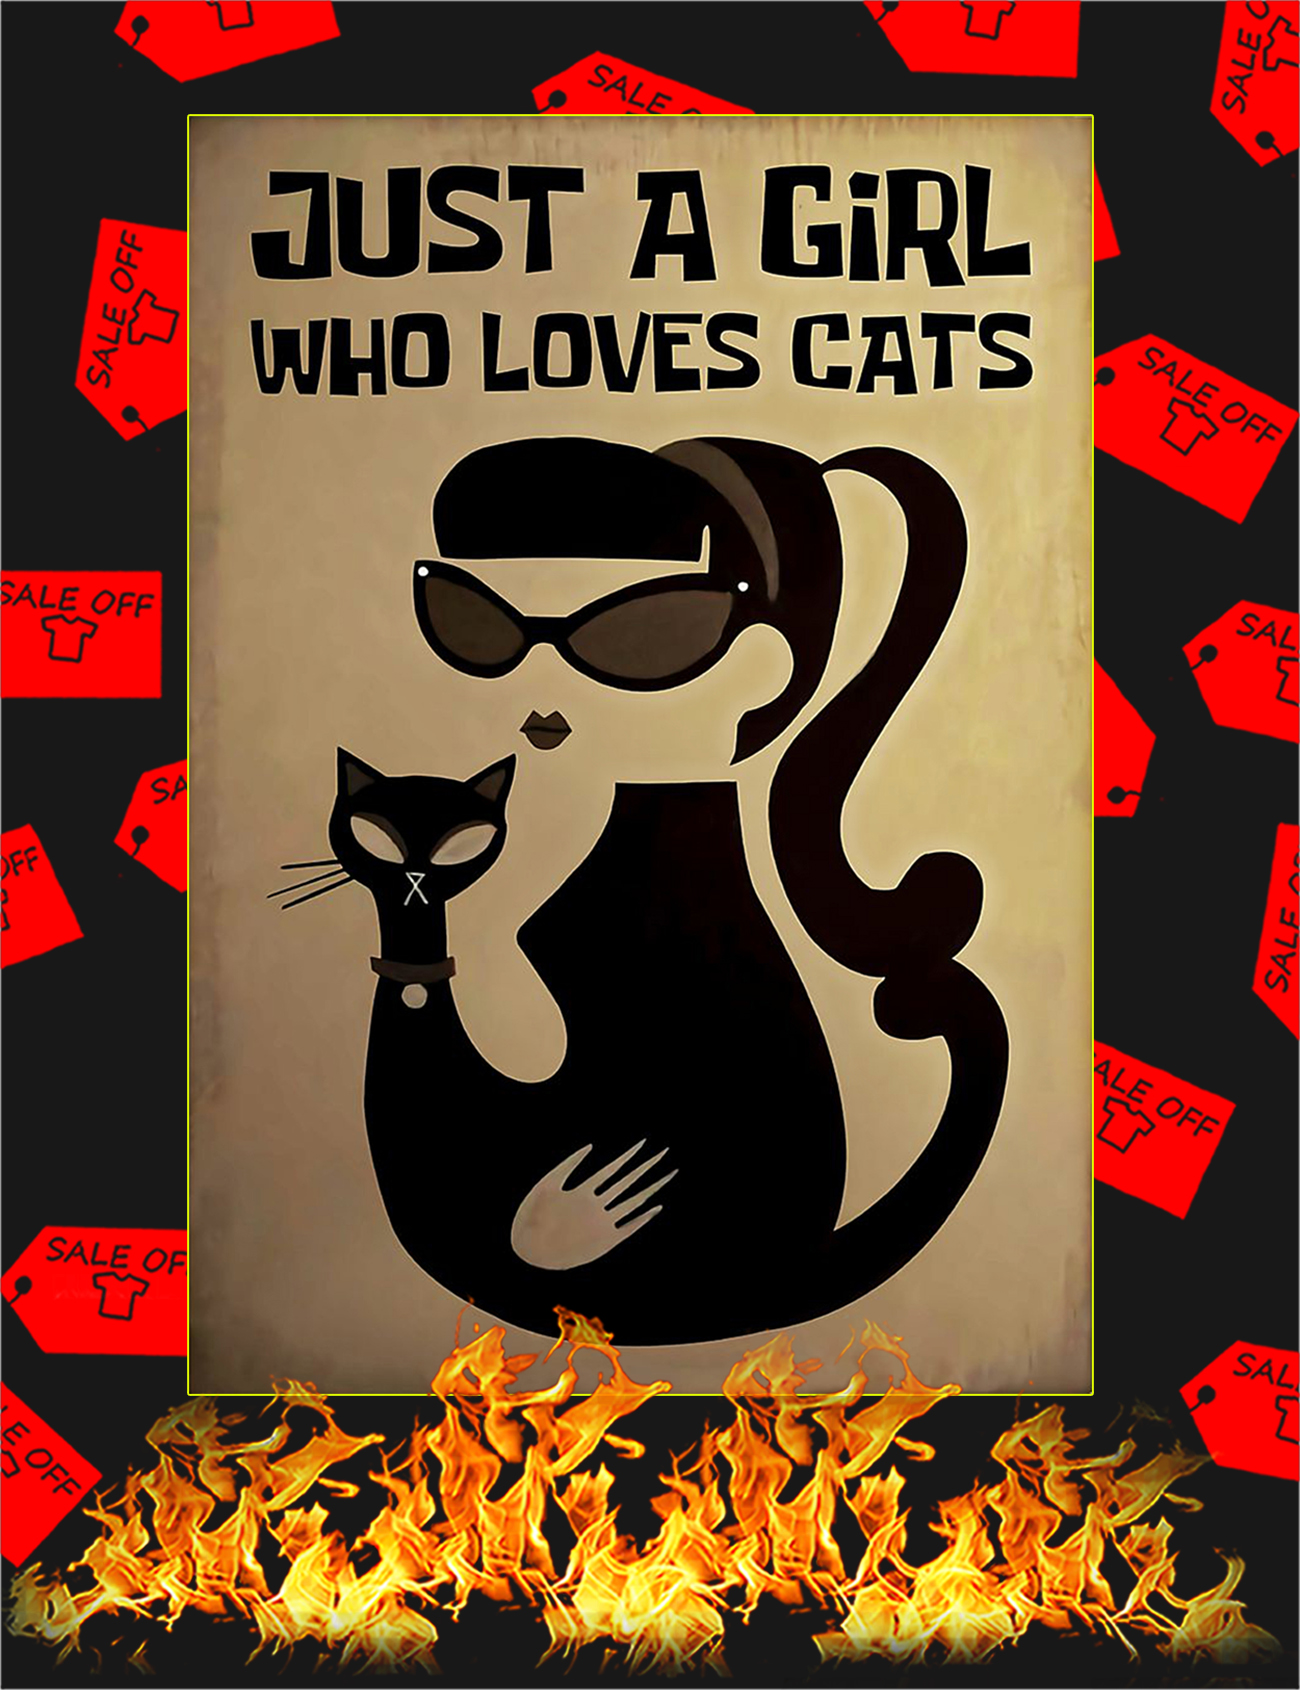 Just a girl who love cats poster - A1